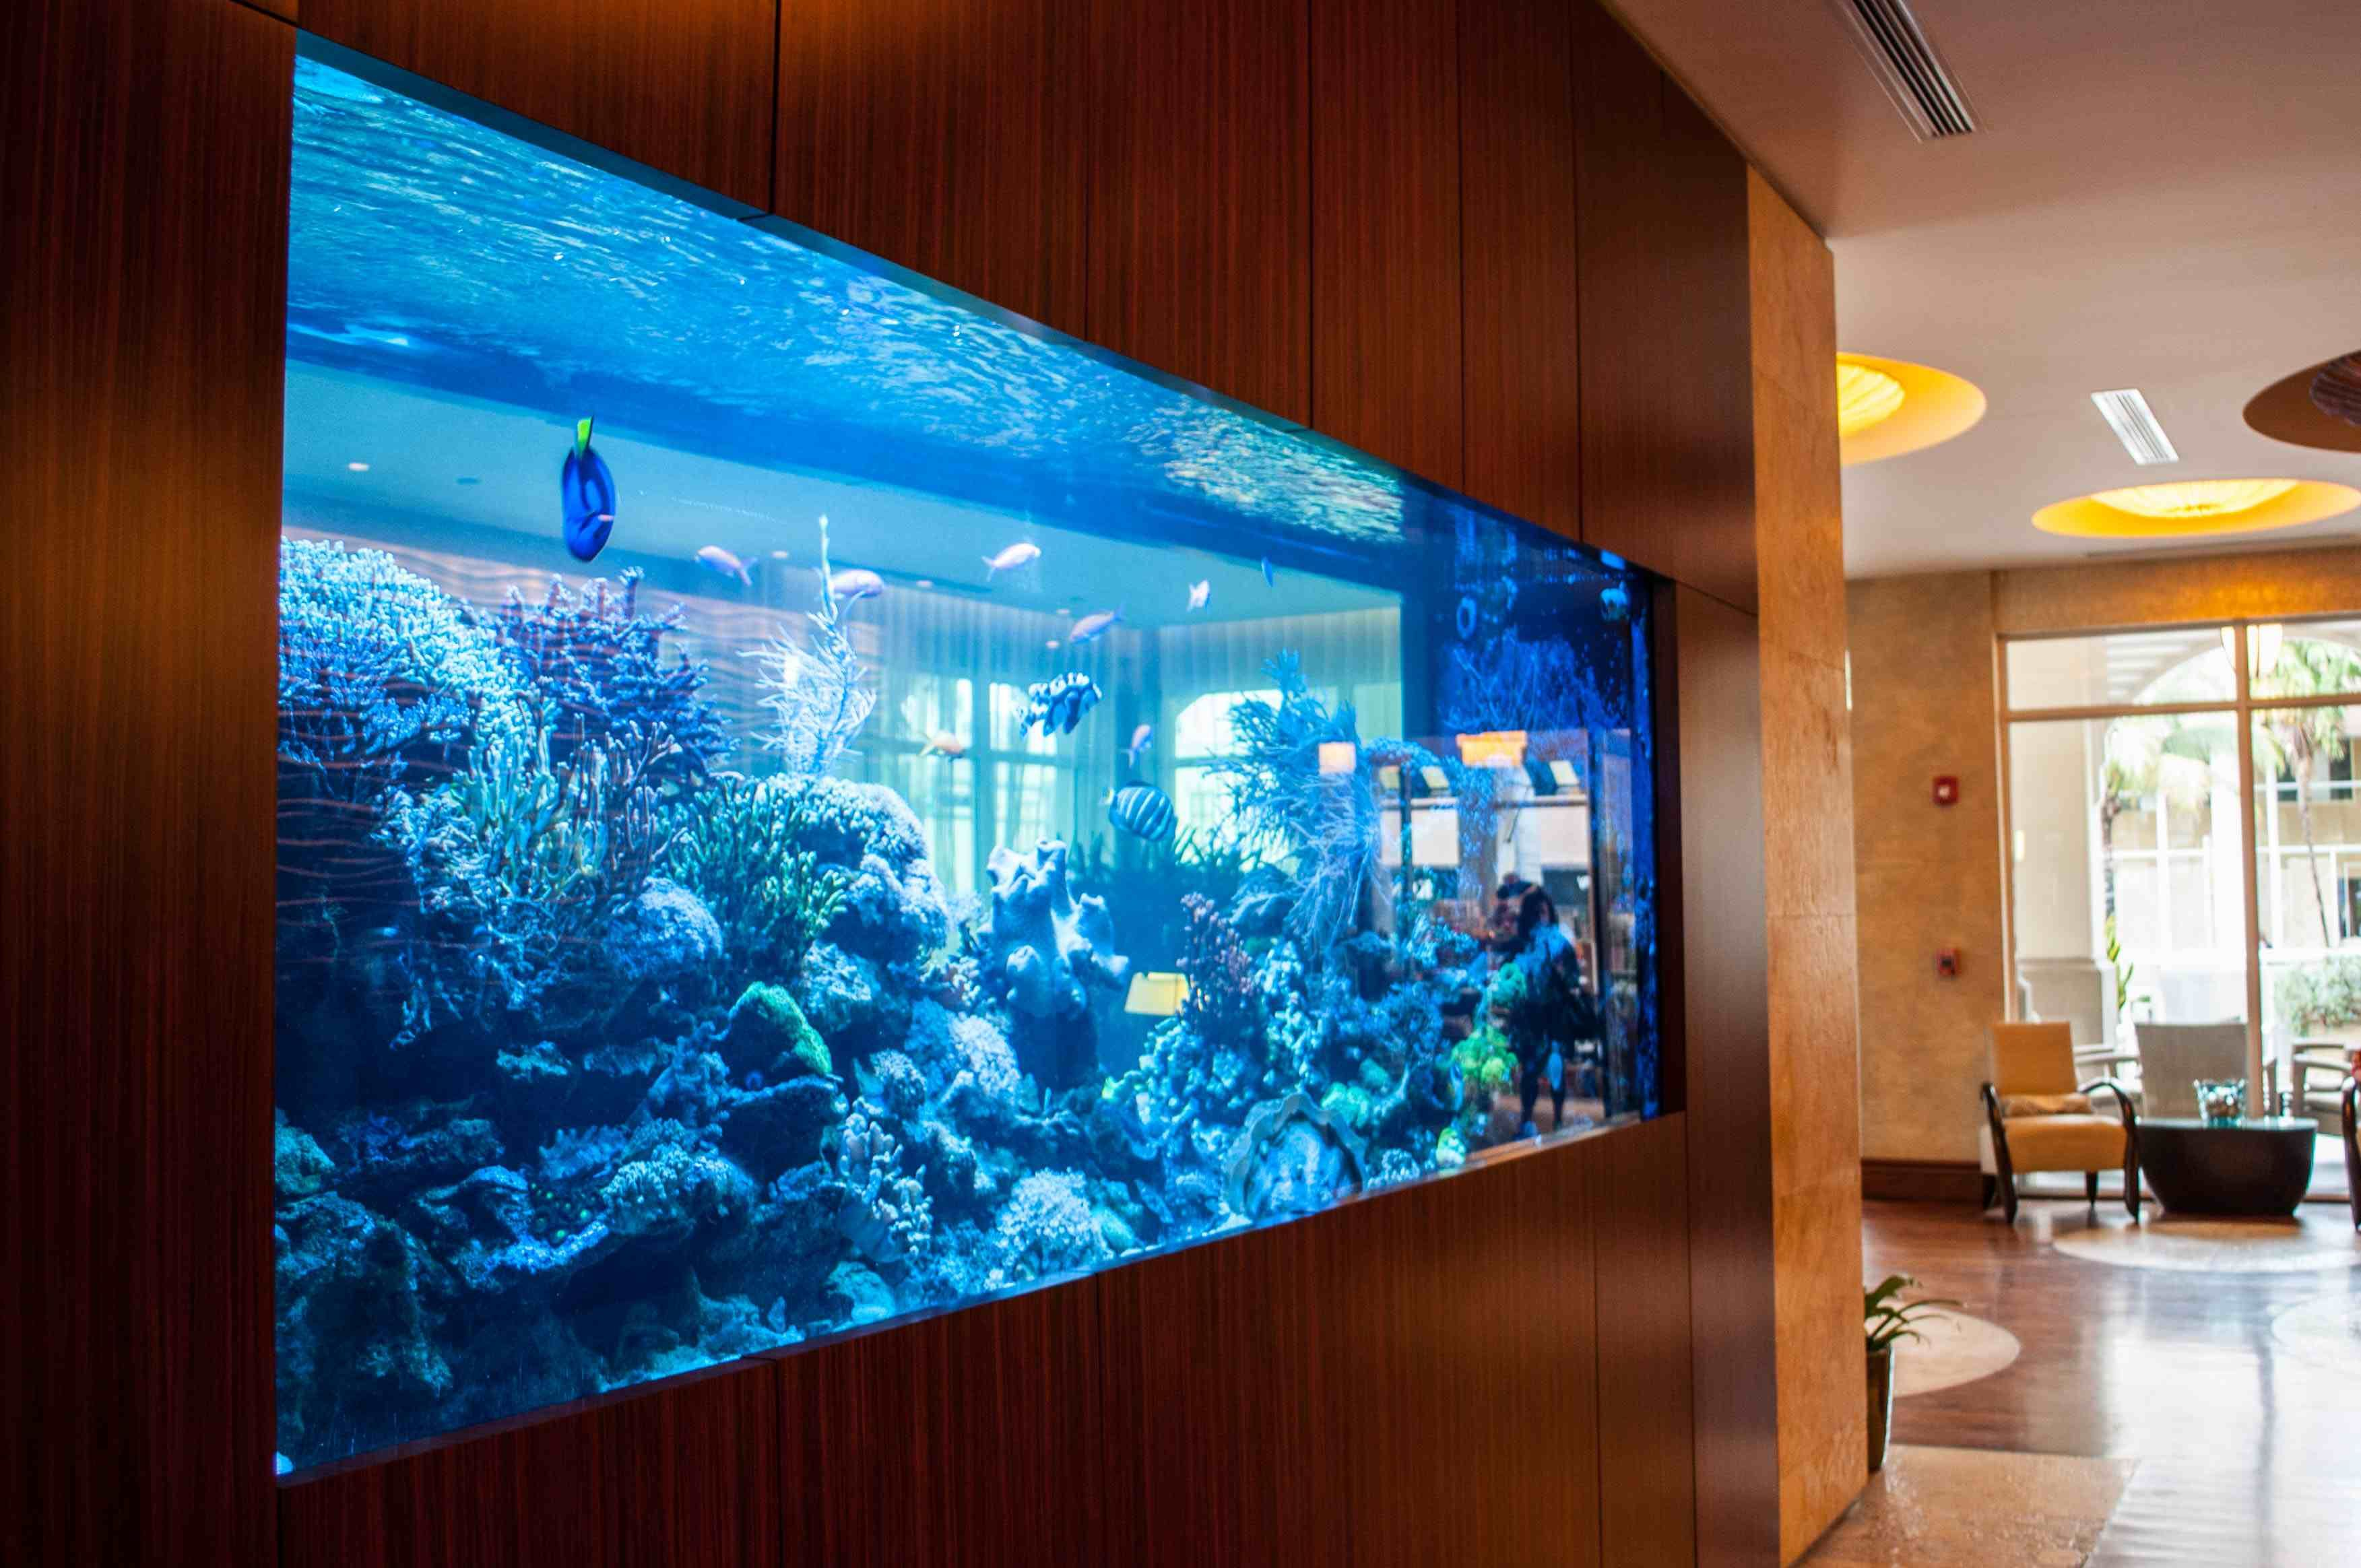 Fish aquarium in brisbane - Aquariums Saltwater Fish Tanks